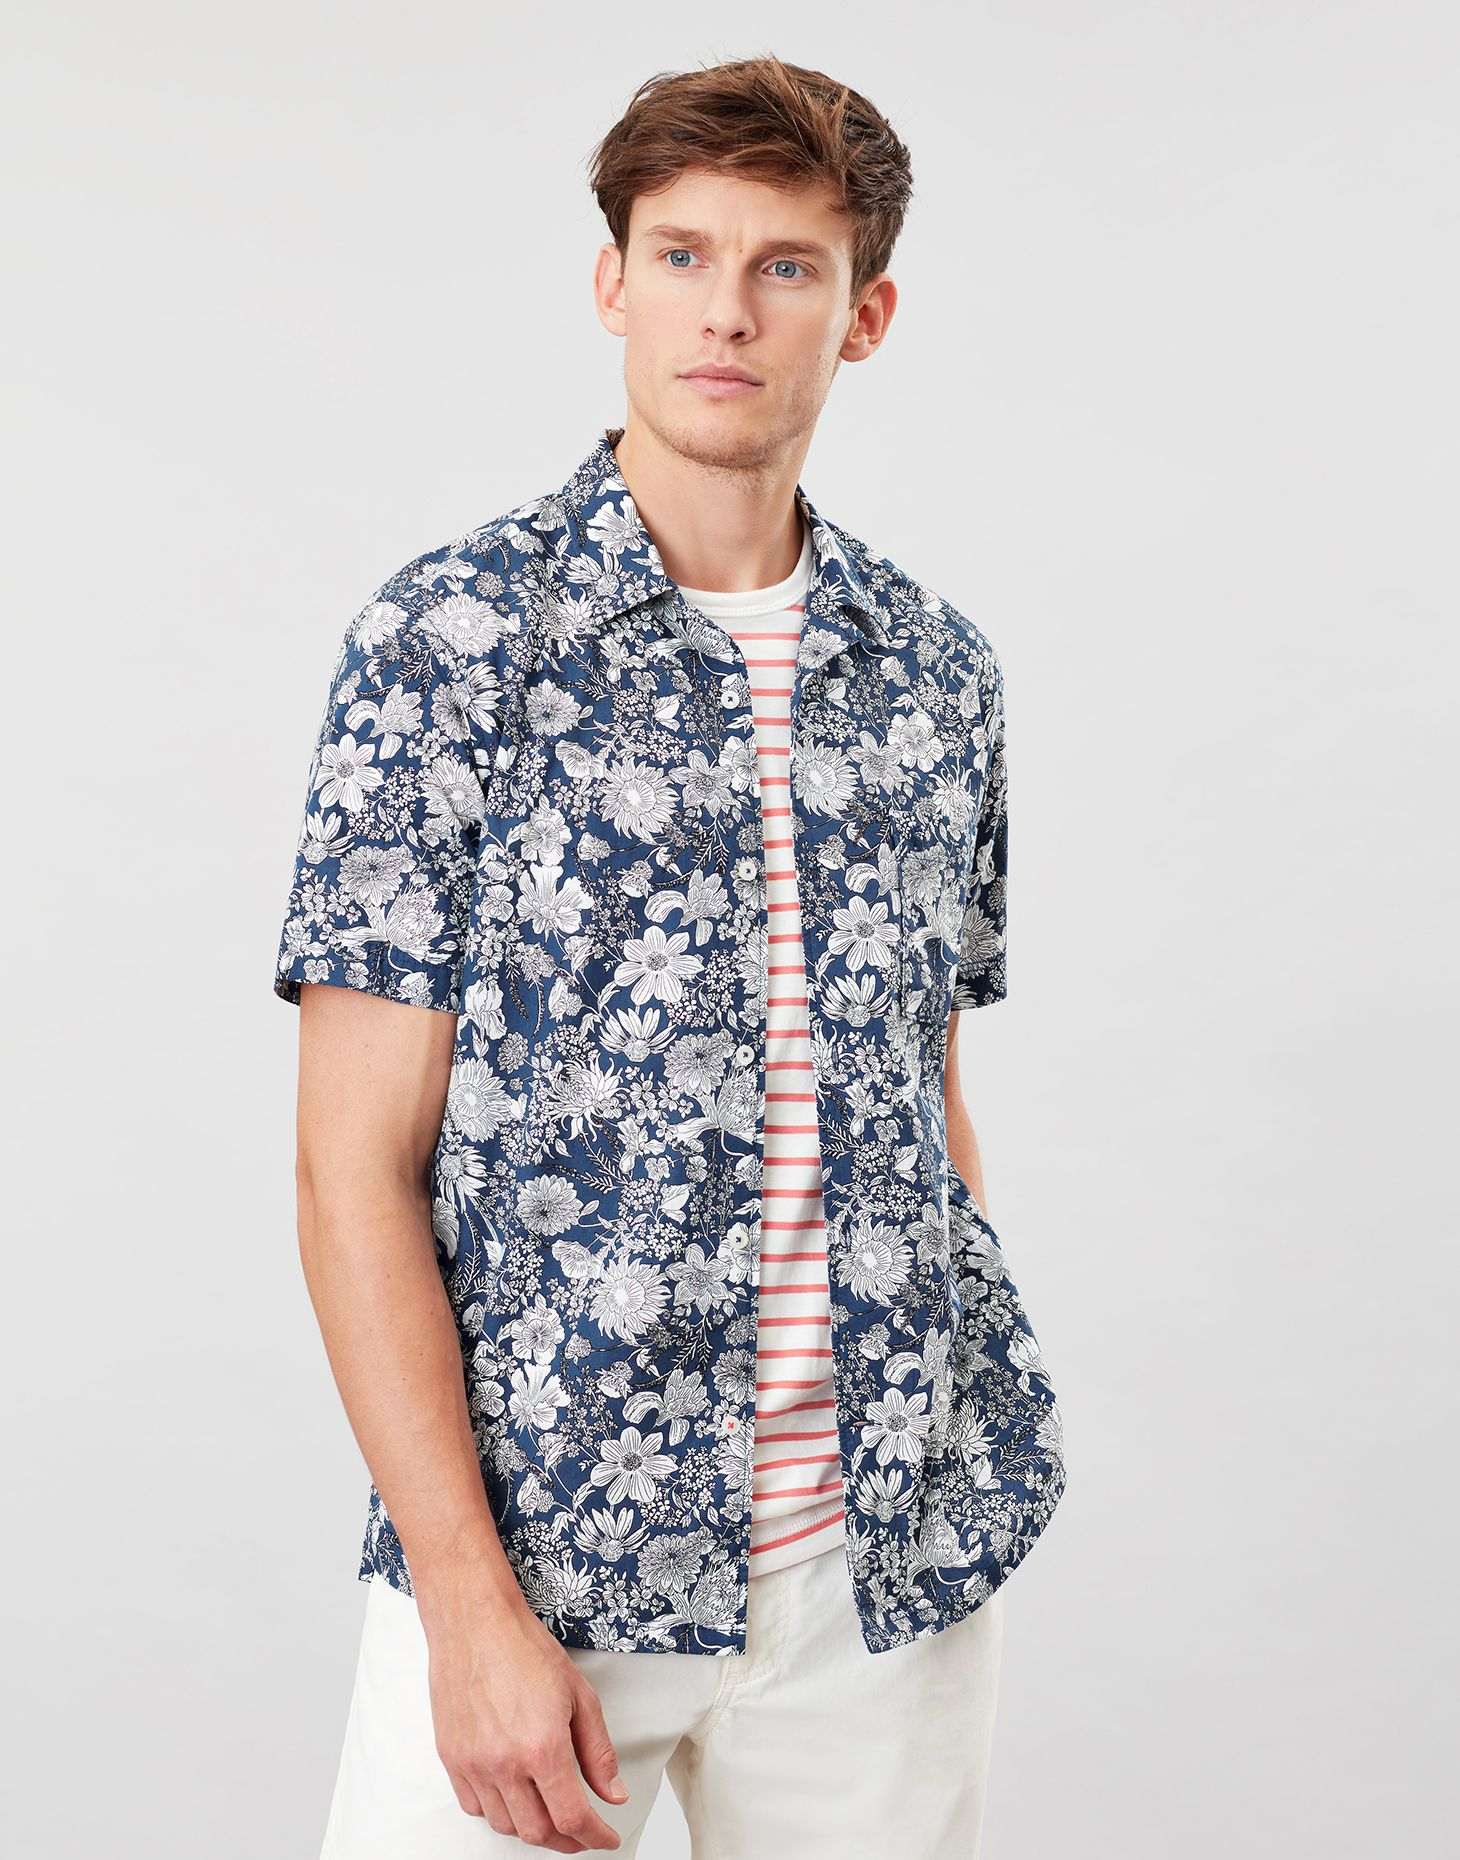 Joules Mens Revere Short Sleeve Collar Printed Shirt Navy Floral